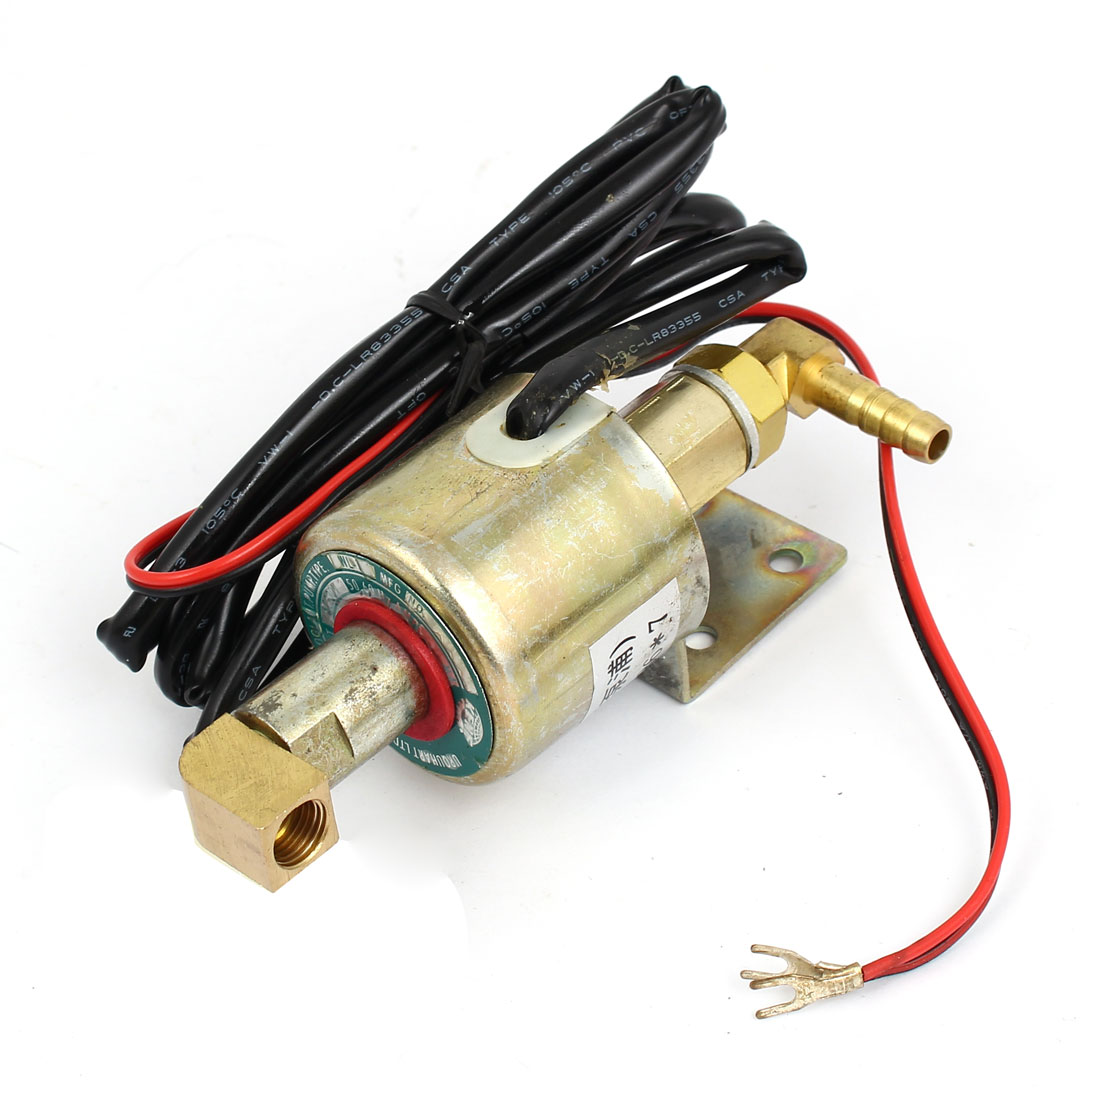 220V Metal Electromagnetic Air Oil Pump Pumping for Lathe Milling Machine